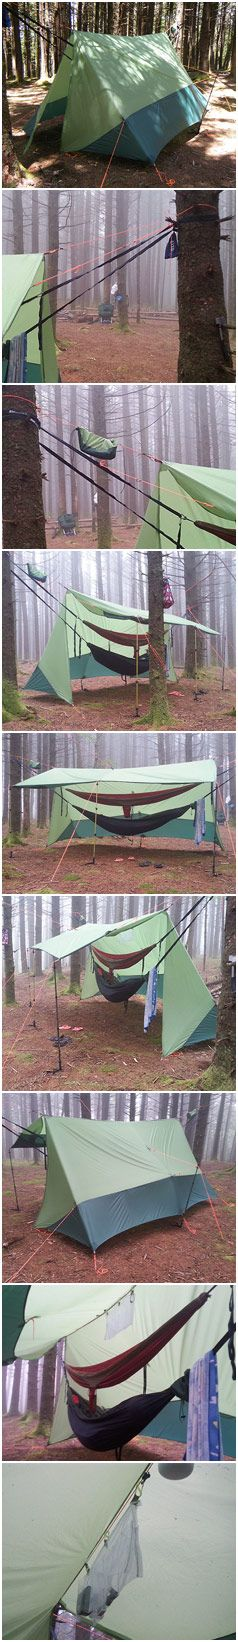 "Being a taller person (6'3"") I needed a diy hammock tarp that, 1) would set up quickly and easily especially in all seasons, 2) is at least 11' long when completely extended on the ridgeline so hammock ends are completely covered, 3) I can walk/stand under relatively easily, 4) I can stack 2 hammocks (possibly 3) under, 5) has decent side room, 6) can become a lean-to style tarp with considerable room underneath, 7) has a ridgeline organizer. So... I built Tim's Tarp."